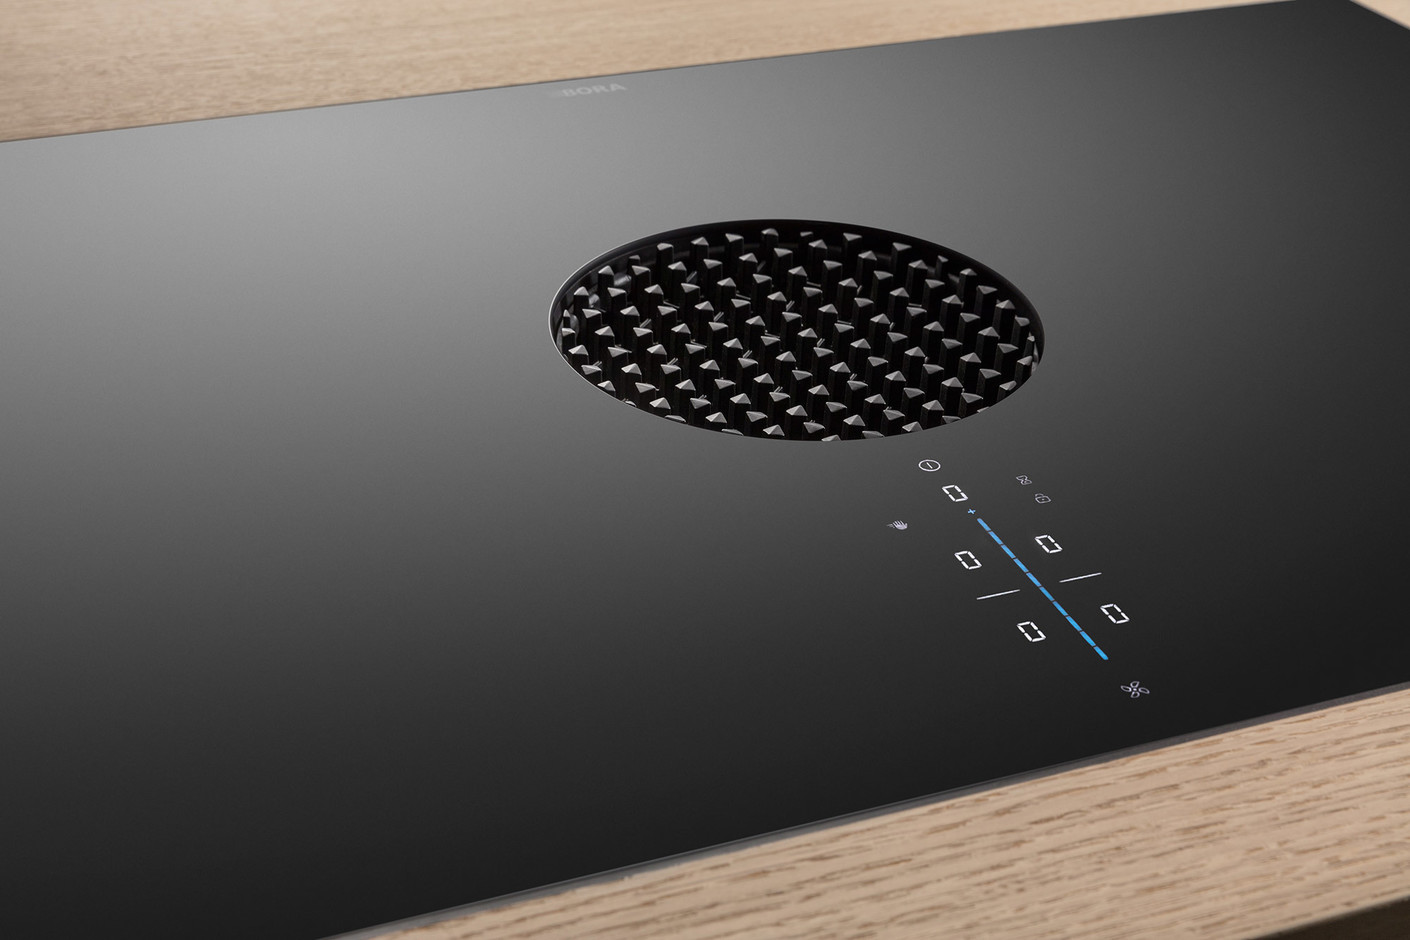 Bora Basic Biu Preis Bora X Pure - Surface Induction Cooktop With Integrated Cooktop Extractor By Bora | Stylepark